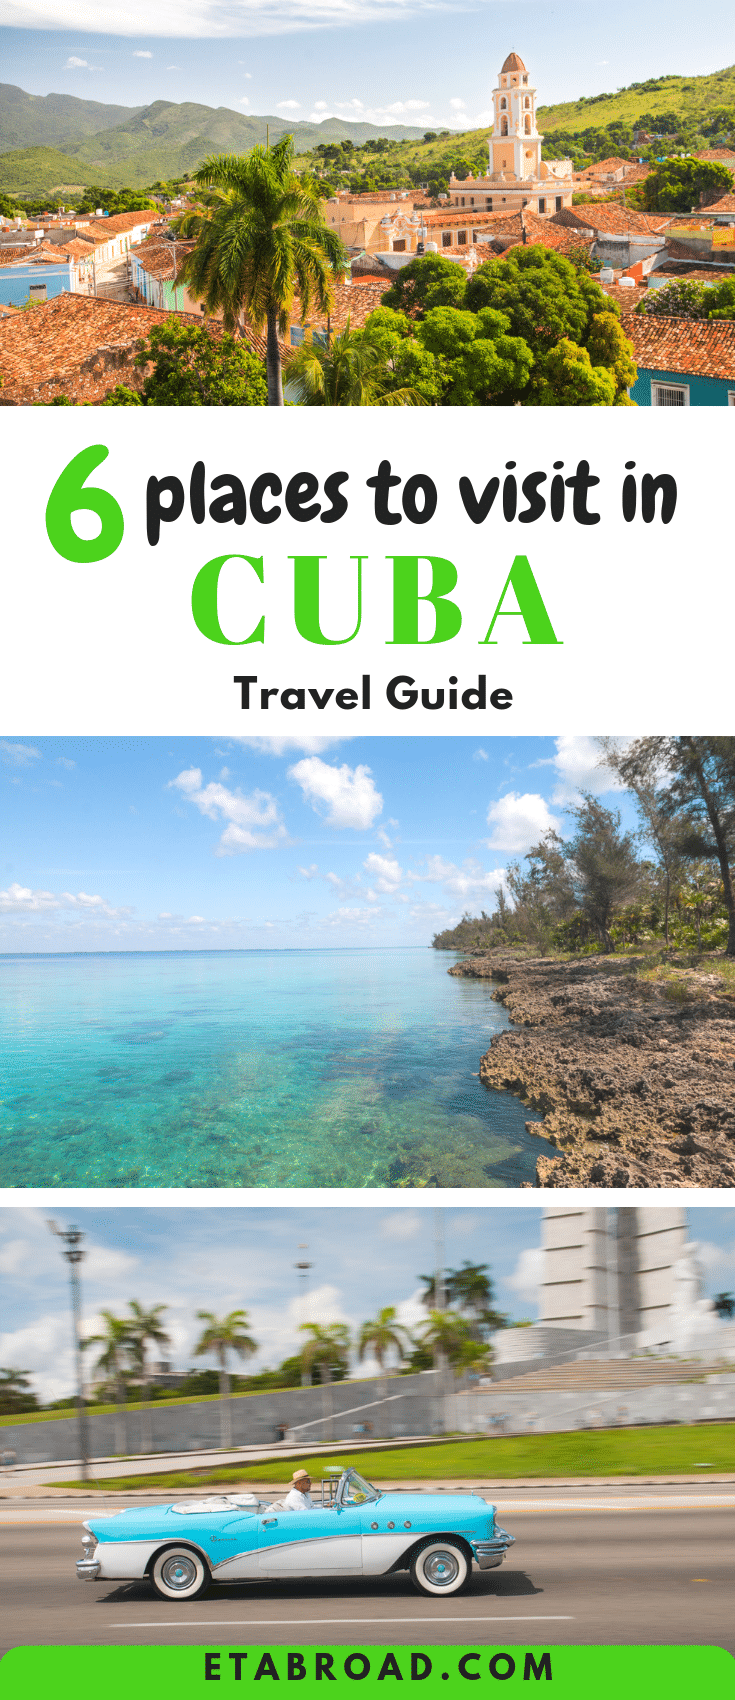 Cuba Travel Guide | What to do in Cuba | must-see places in Cuba | Best things to see in Cuba | Thing to do in Cuba | Beautiful Places of Cuba | Cuba Travel